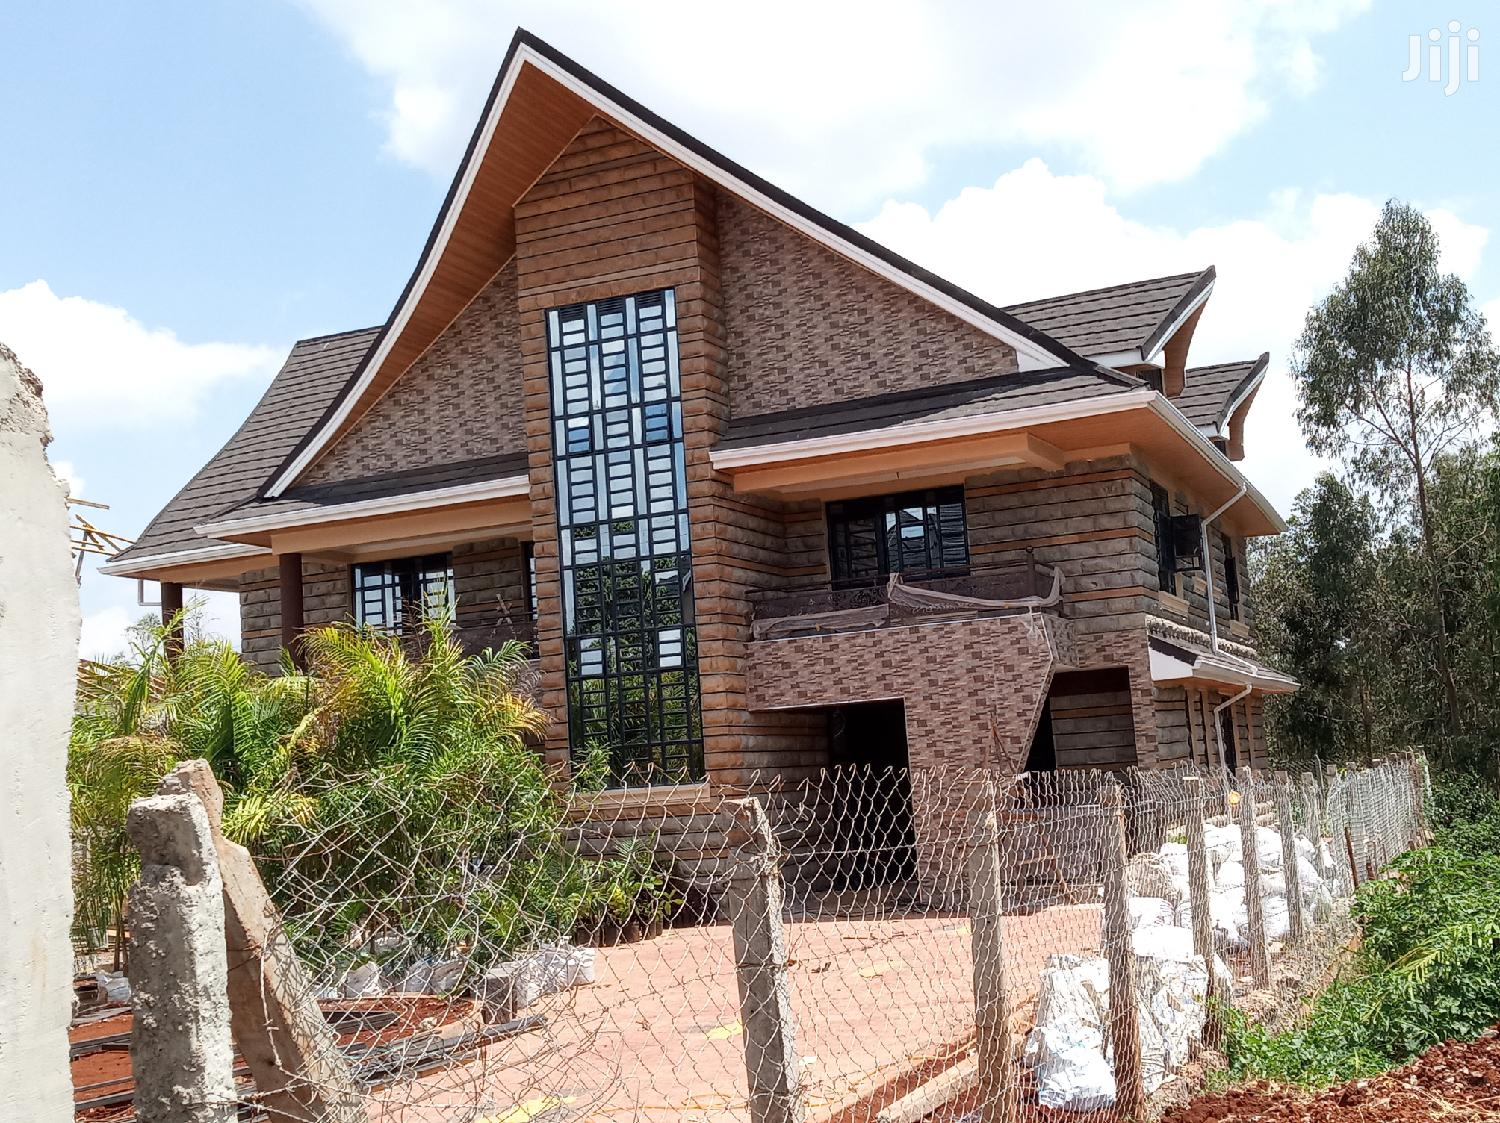 Ruiru Daykio Bustani 5 Bedroom All Ensuite + Swimming Pool | Houses & Apartments For Sale for sale in Ruiru, Kiambu, Kenya